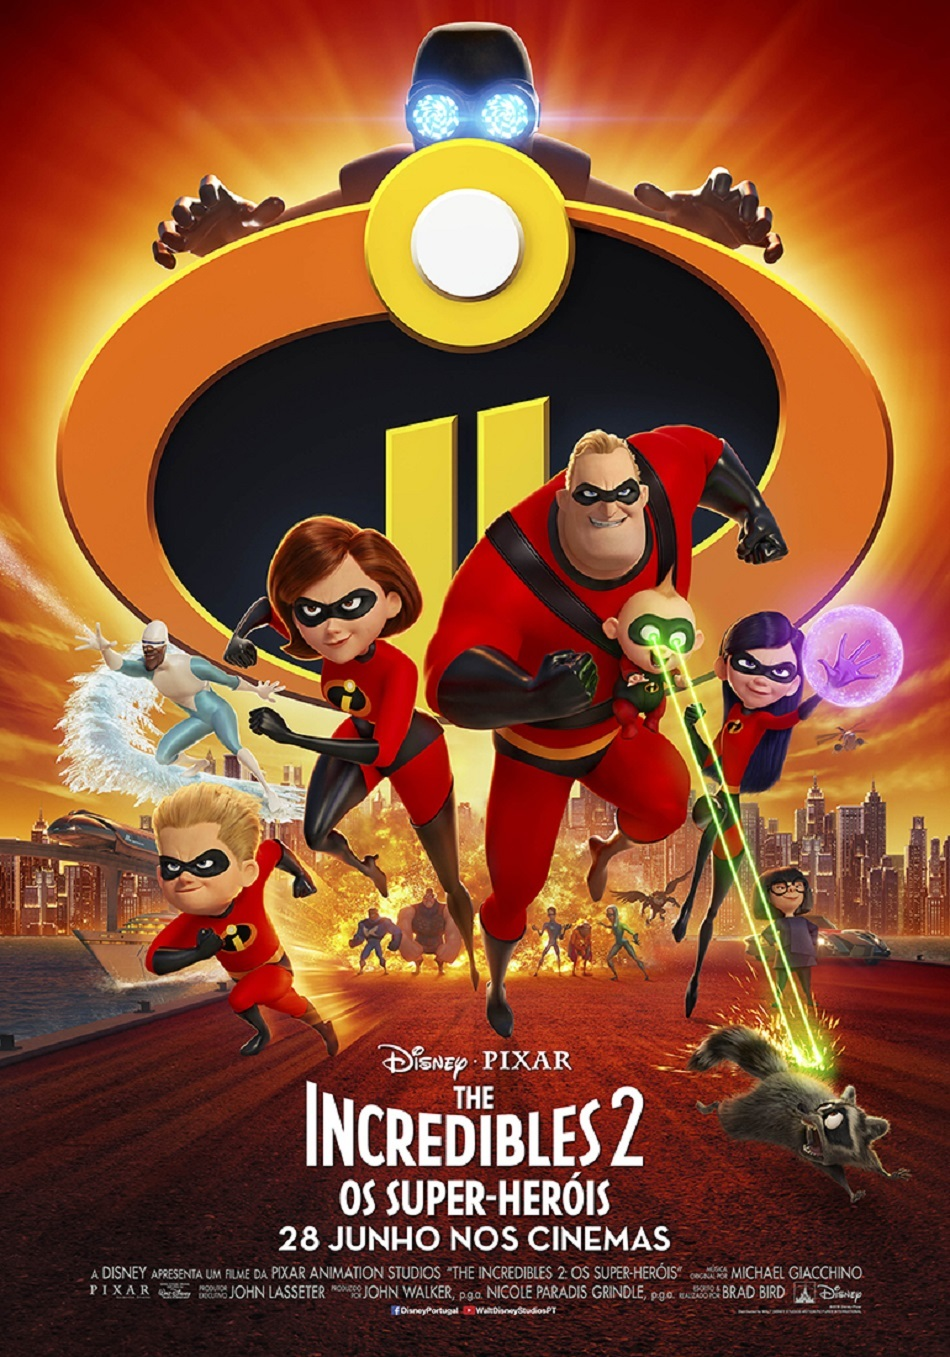 The Incredibles 2: Os Super-Heróis (PT-PT) download